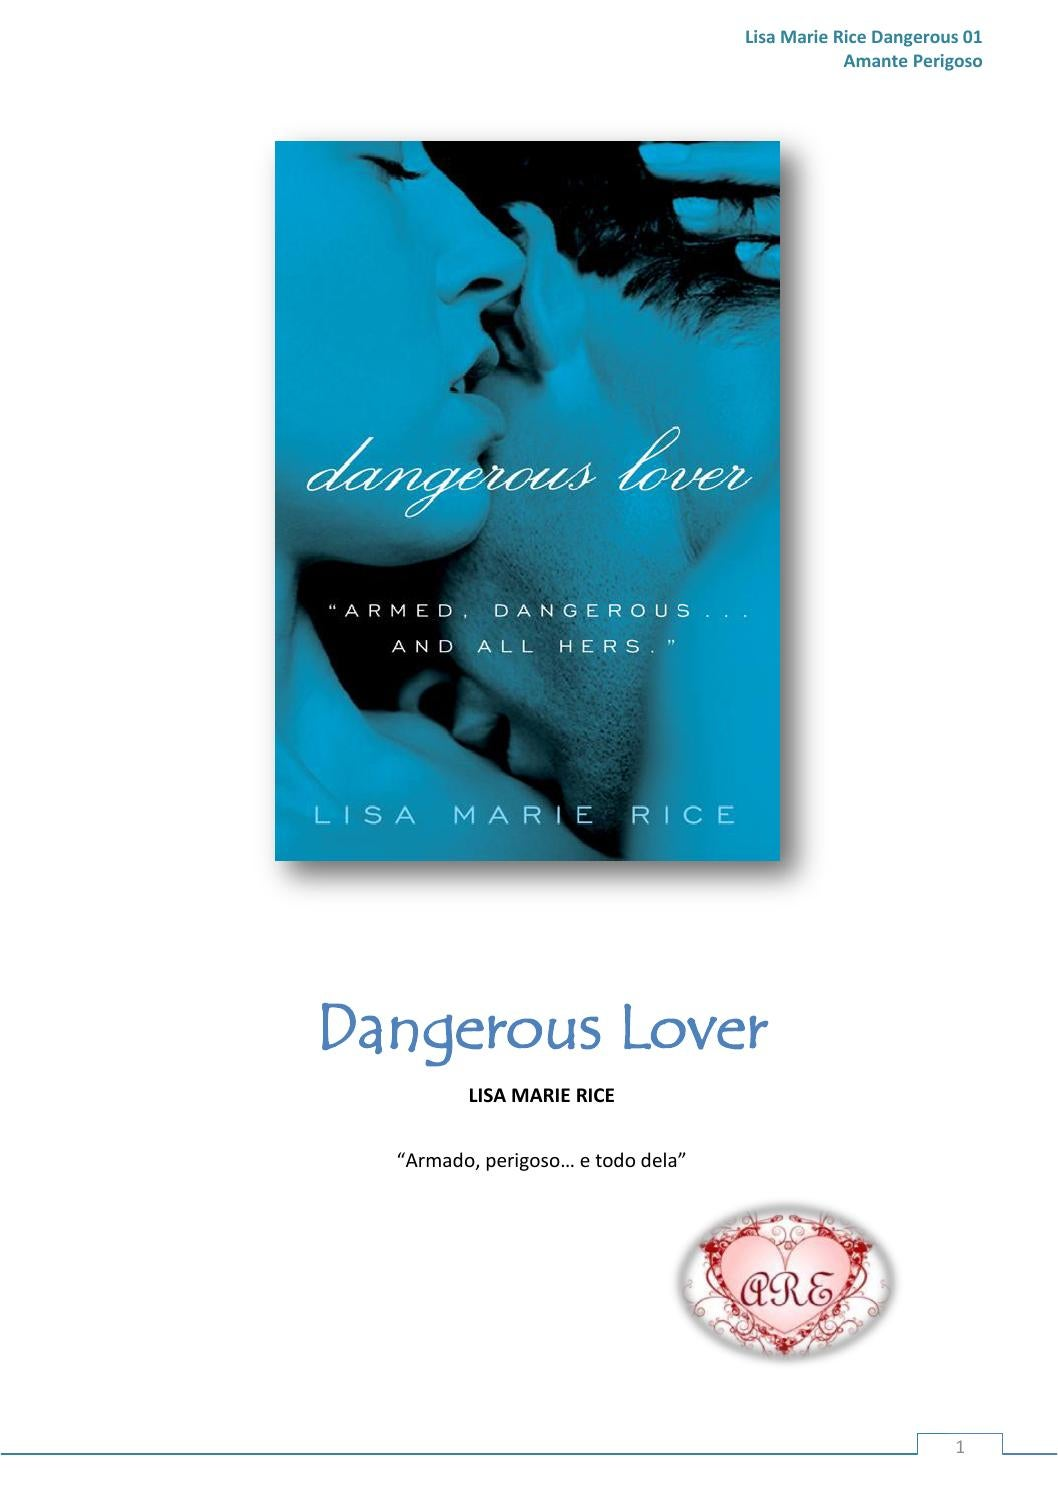 Lisa marie rice dangerous lover 1 amante perigoso (1) by pedro augusto  magalhaes araujo - issuu 6818902b2b